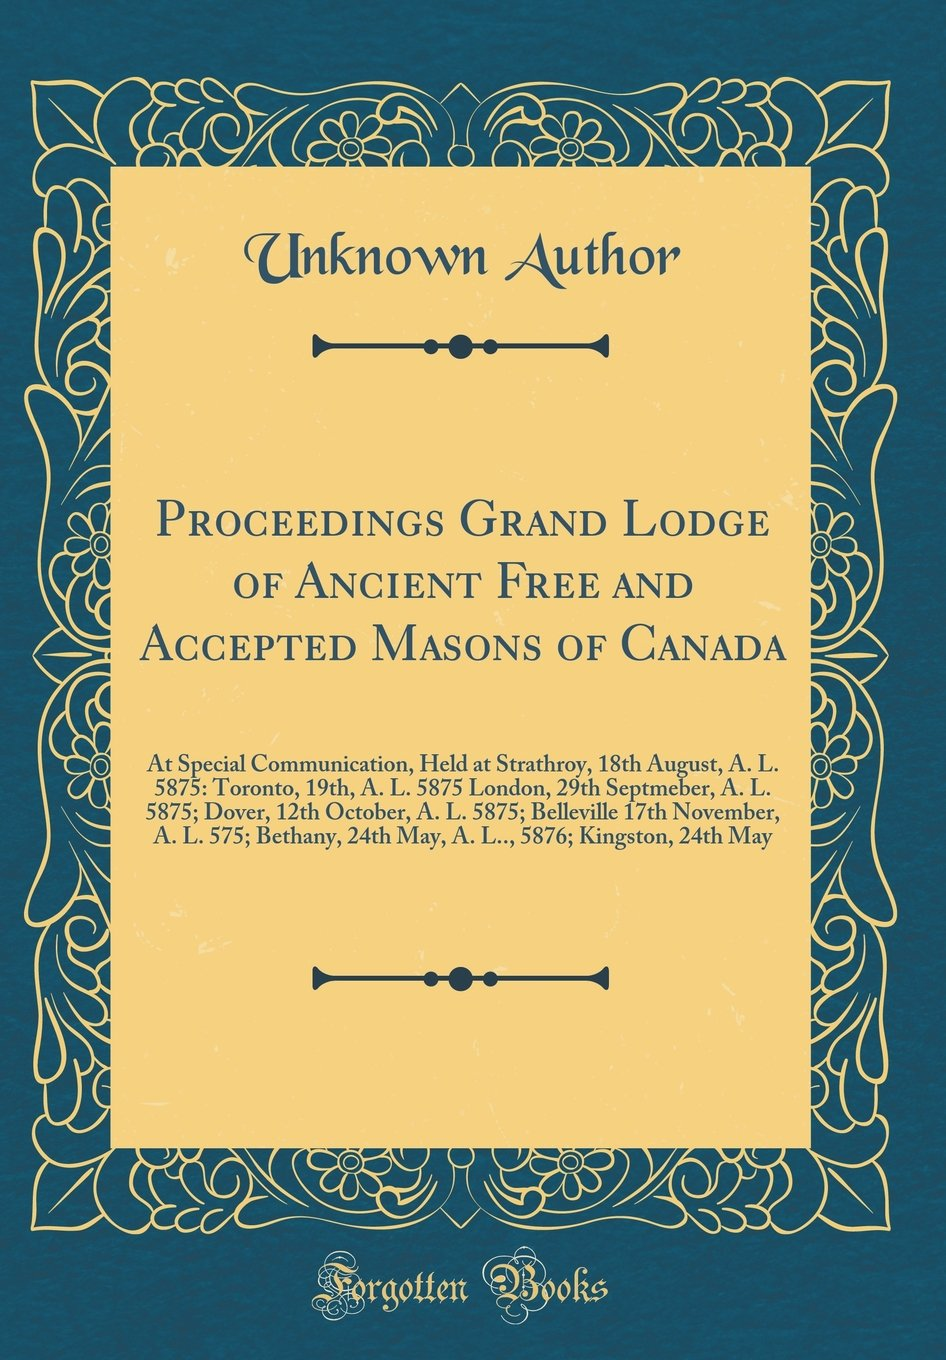 Download Proceedings Grand Lodge of Ancient Free and Accepted Masons of Canada: At Special Communication, Held at Strathroy, 18th August, A. L. 5875: Toronto, ... 12th October, A. L. 5875; Belleville 17th Nov pdf epub